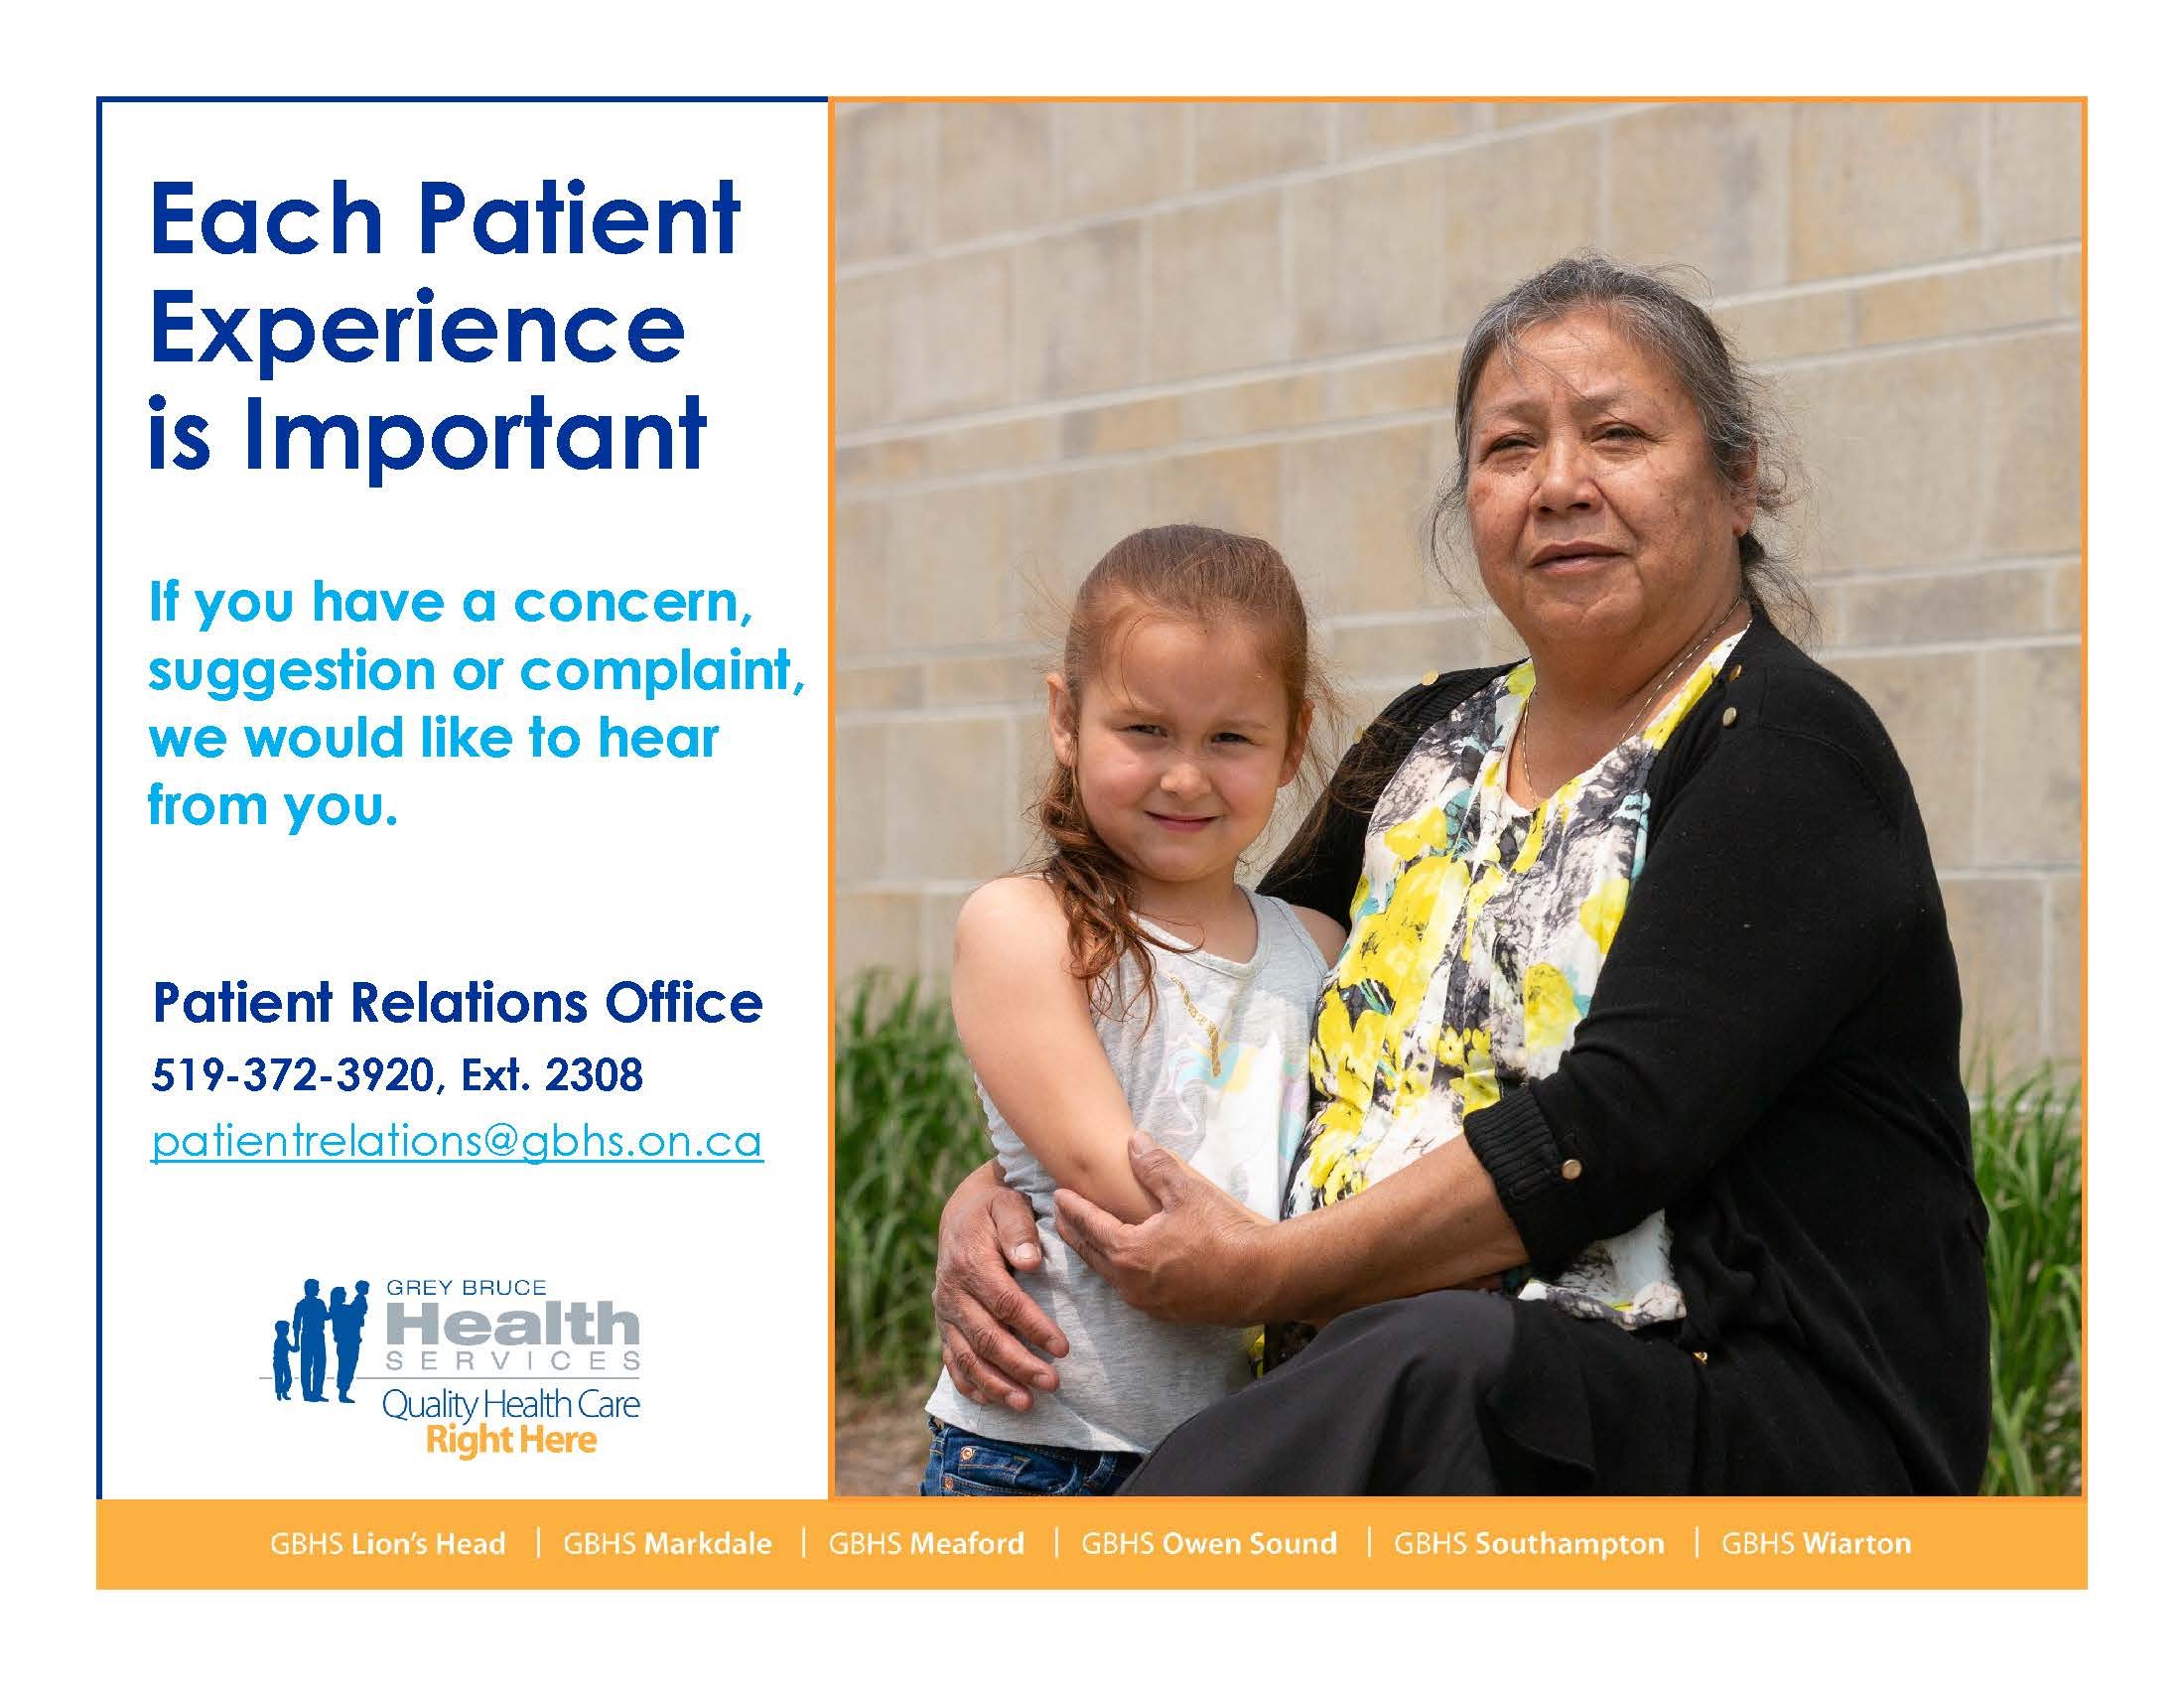 Patient Experience Poster: Each Patient Experience is Important. If you have a concern, suggestion or complaint we would like to hear from you.